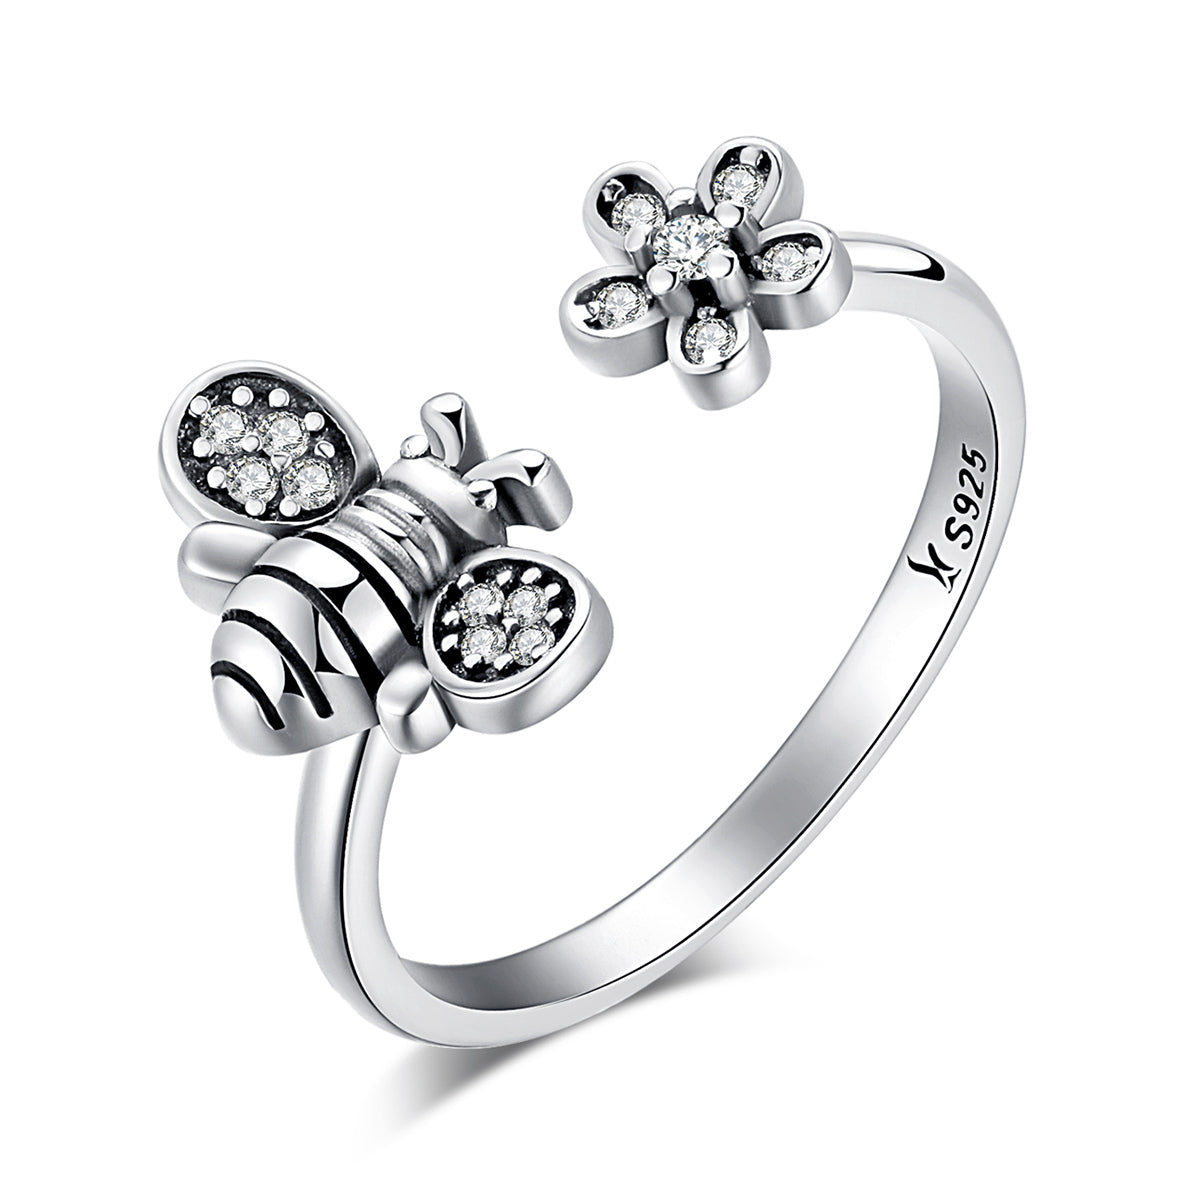 rings silver products daisy ring madison audrey flower sterling engagement pink